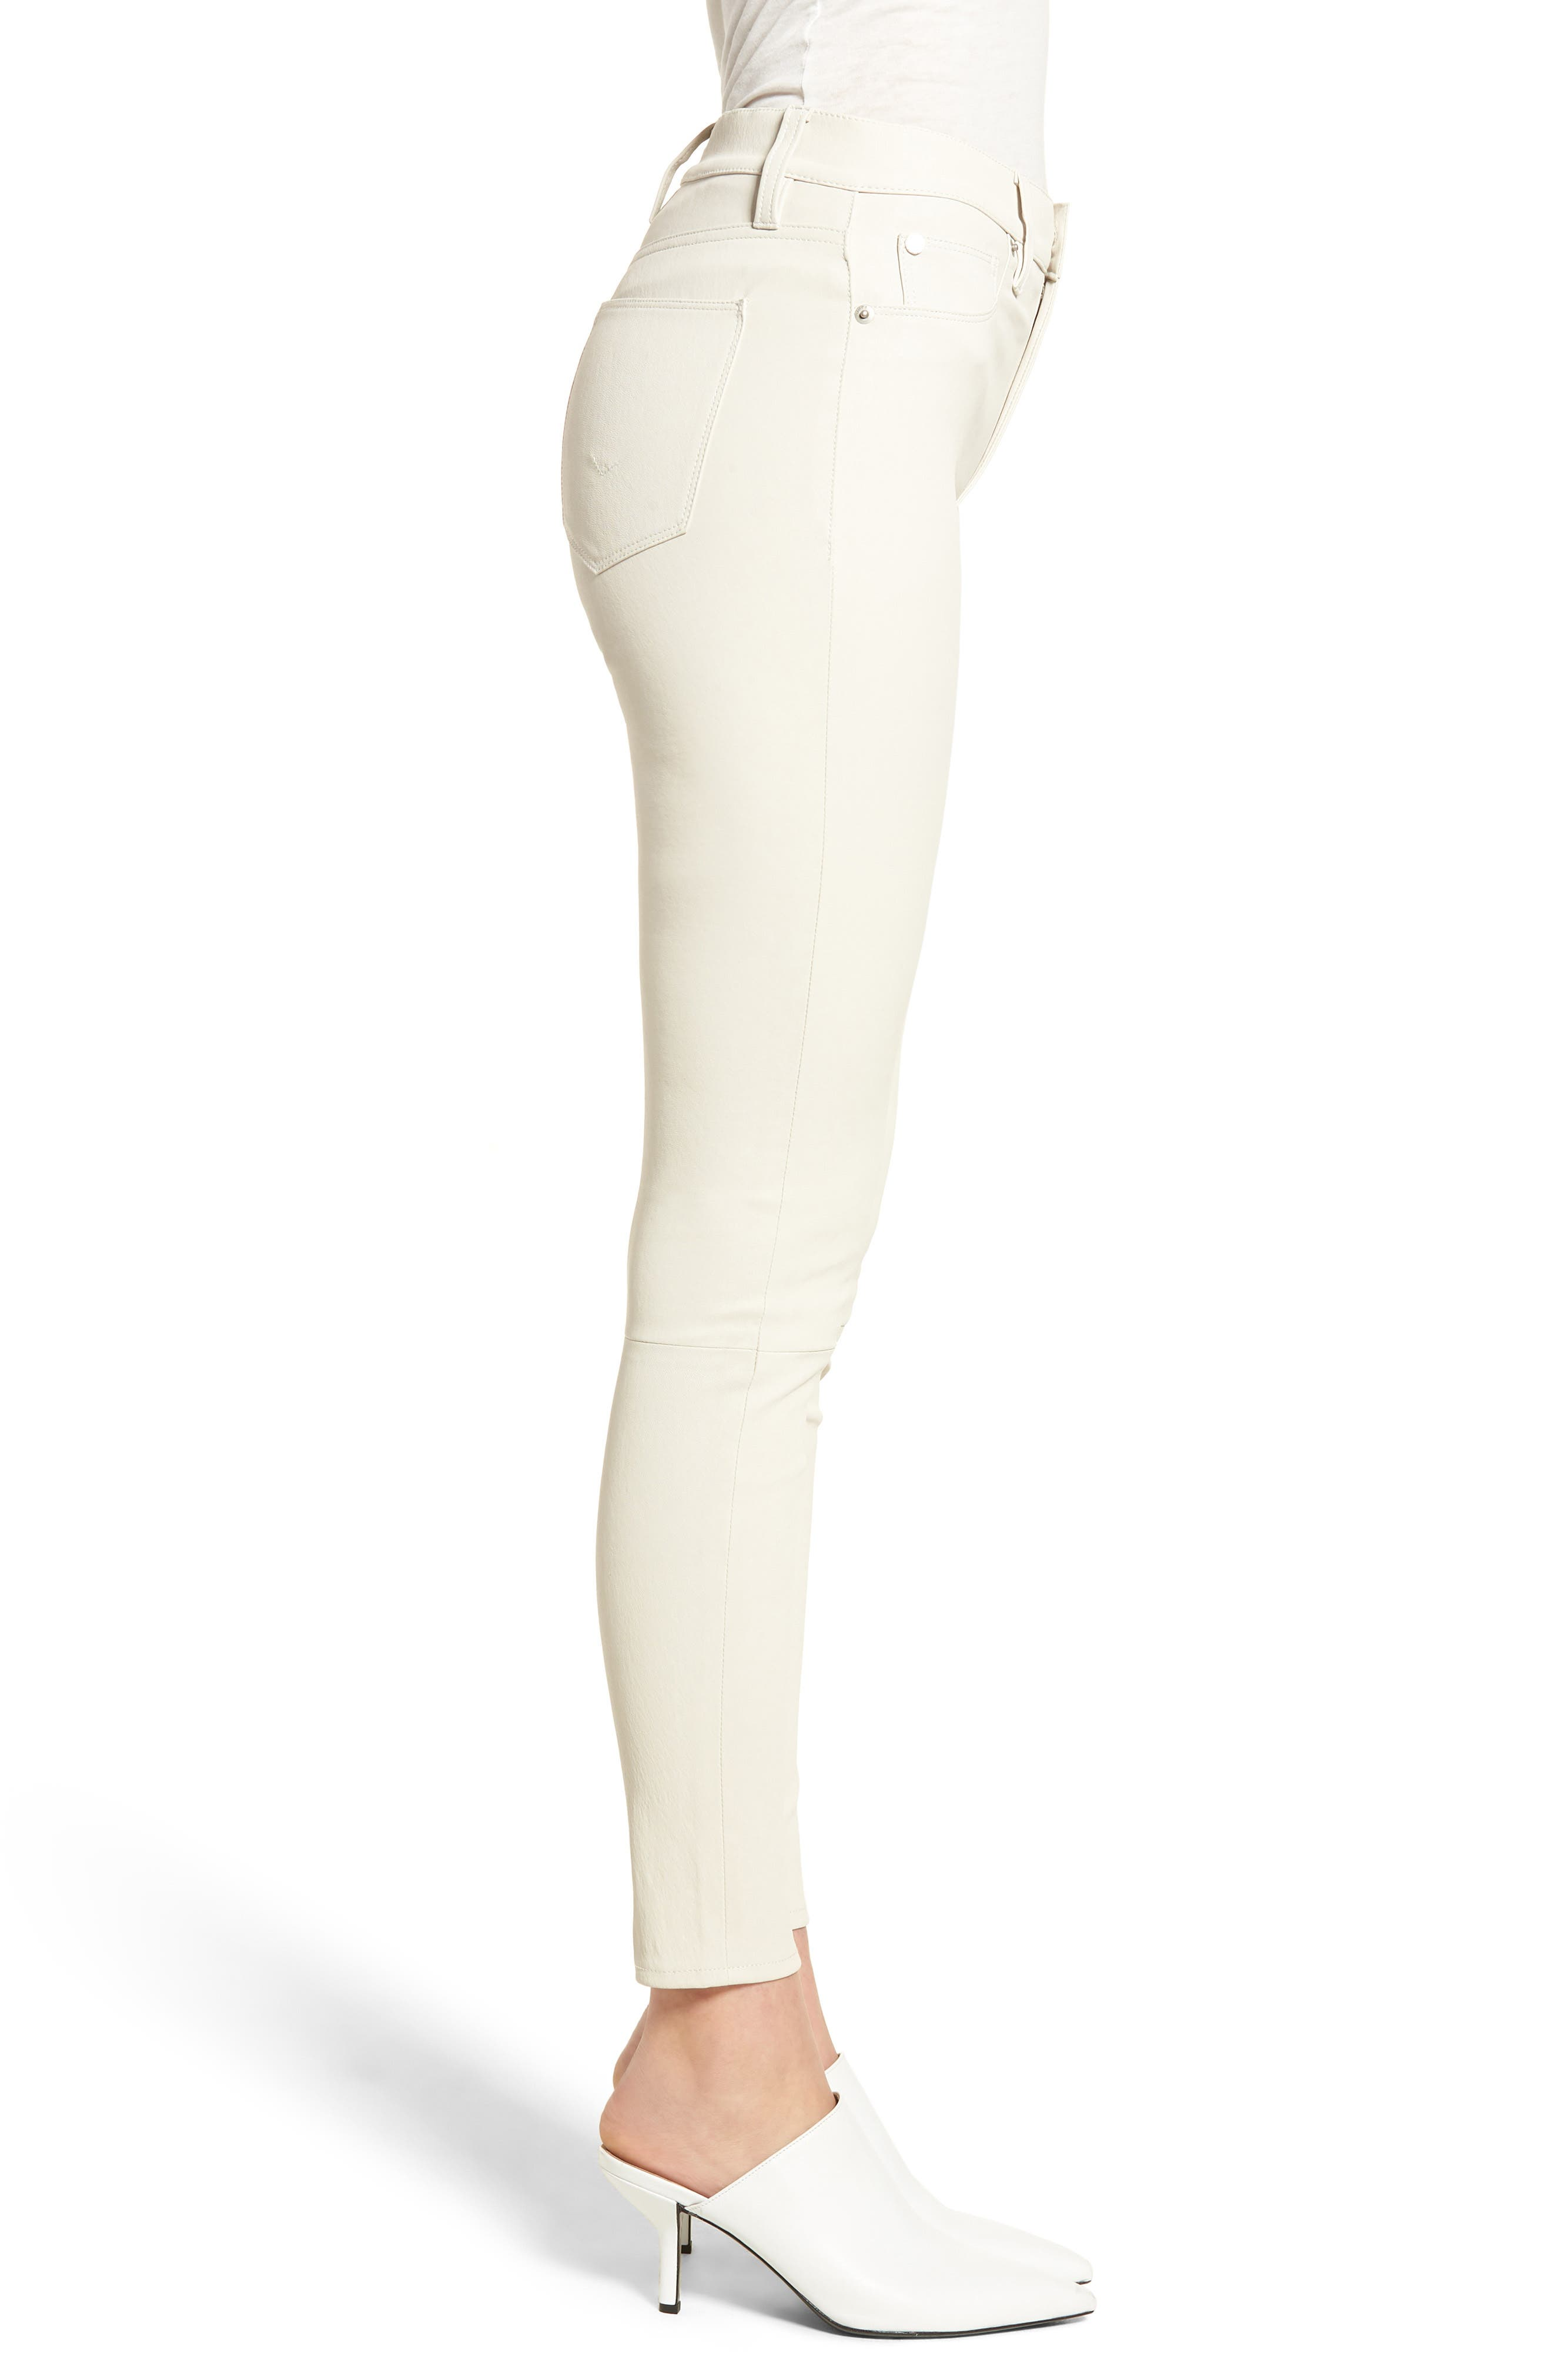 Barbara High Waist Super Skinny Leather Jeans,                             Alternate thumbnail 3, color,                             Pale White